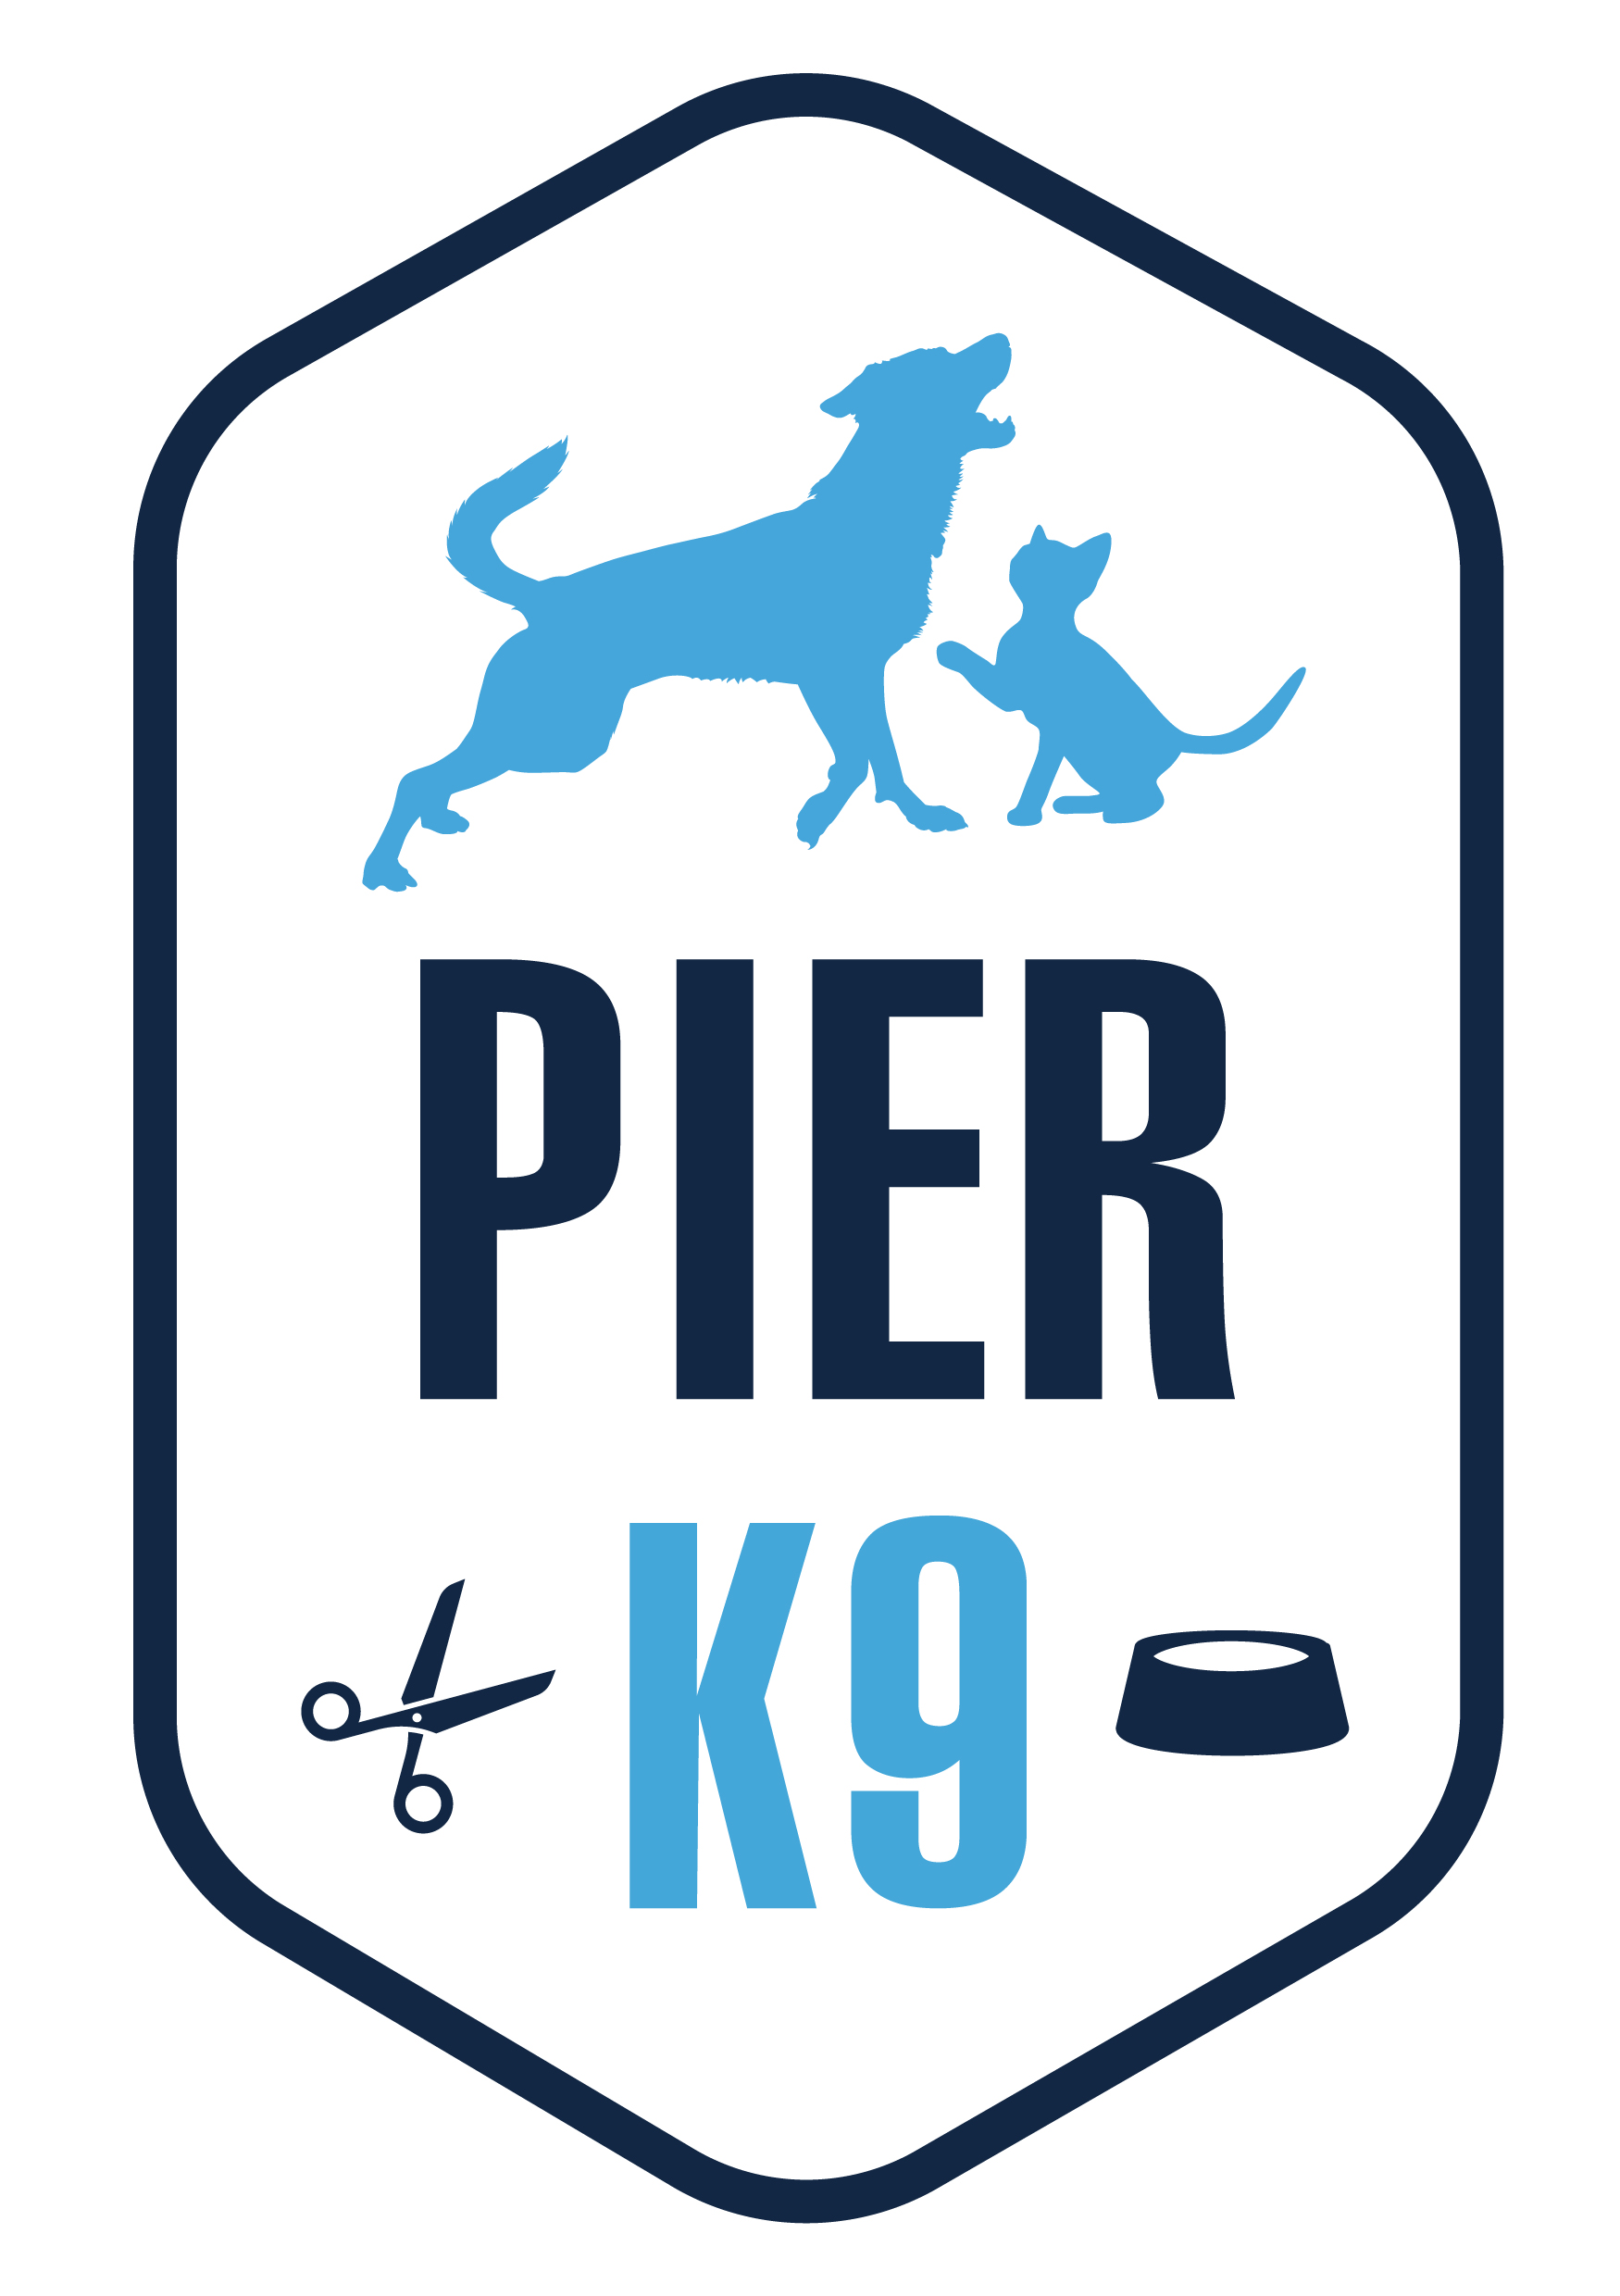 Pier k9 pet shop pet supplies grooming dog boarding oceanside solutioingenieria Images